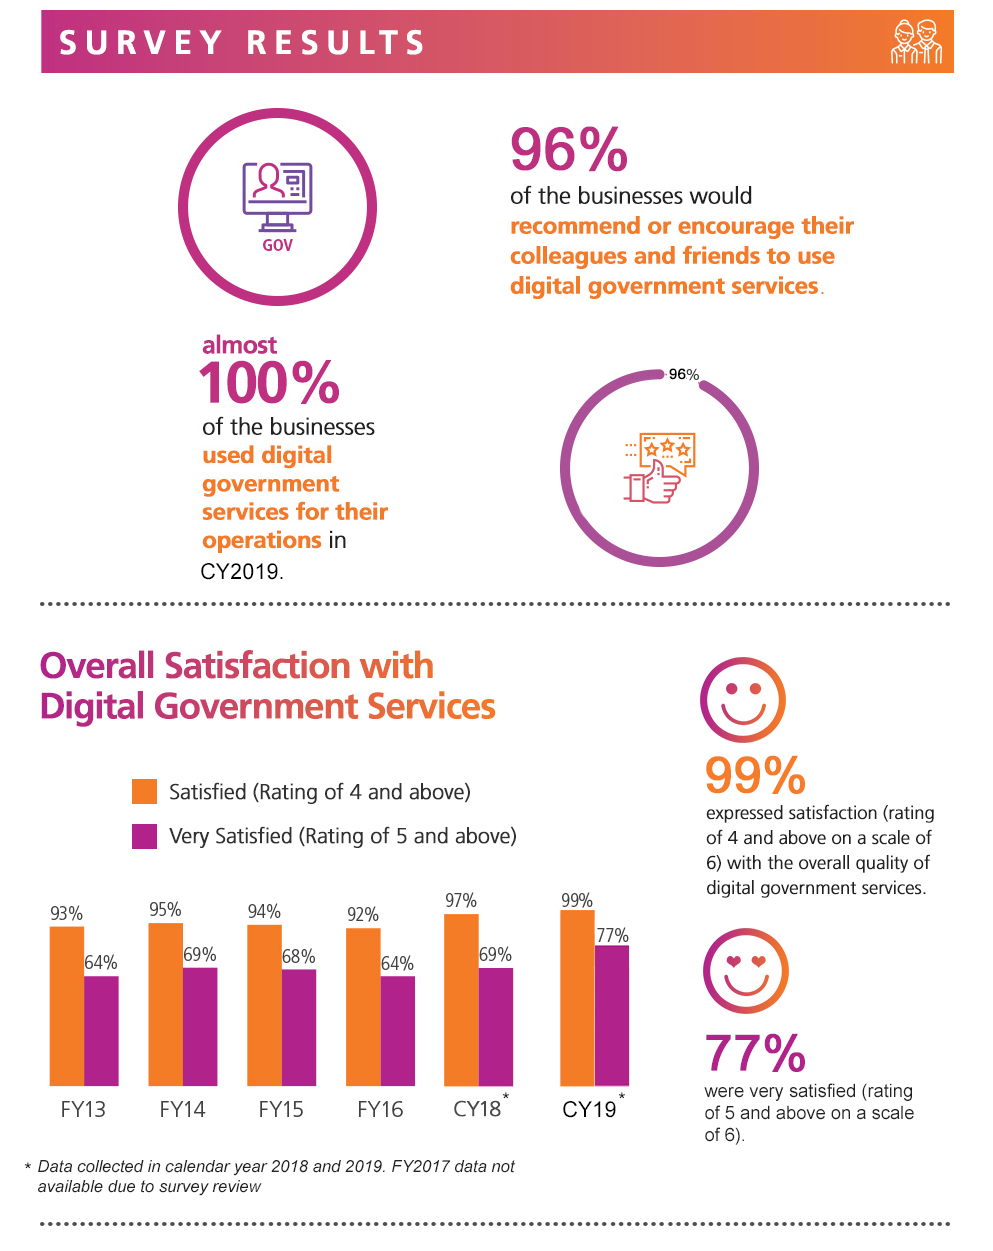 Digital Government Perception Survey 2019 for Business by GovTech